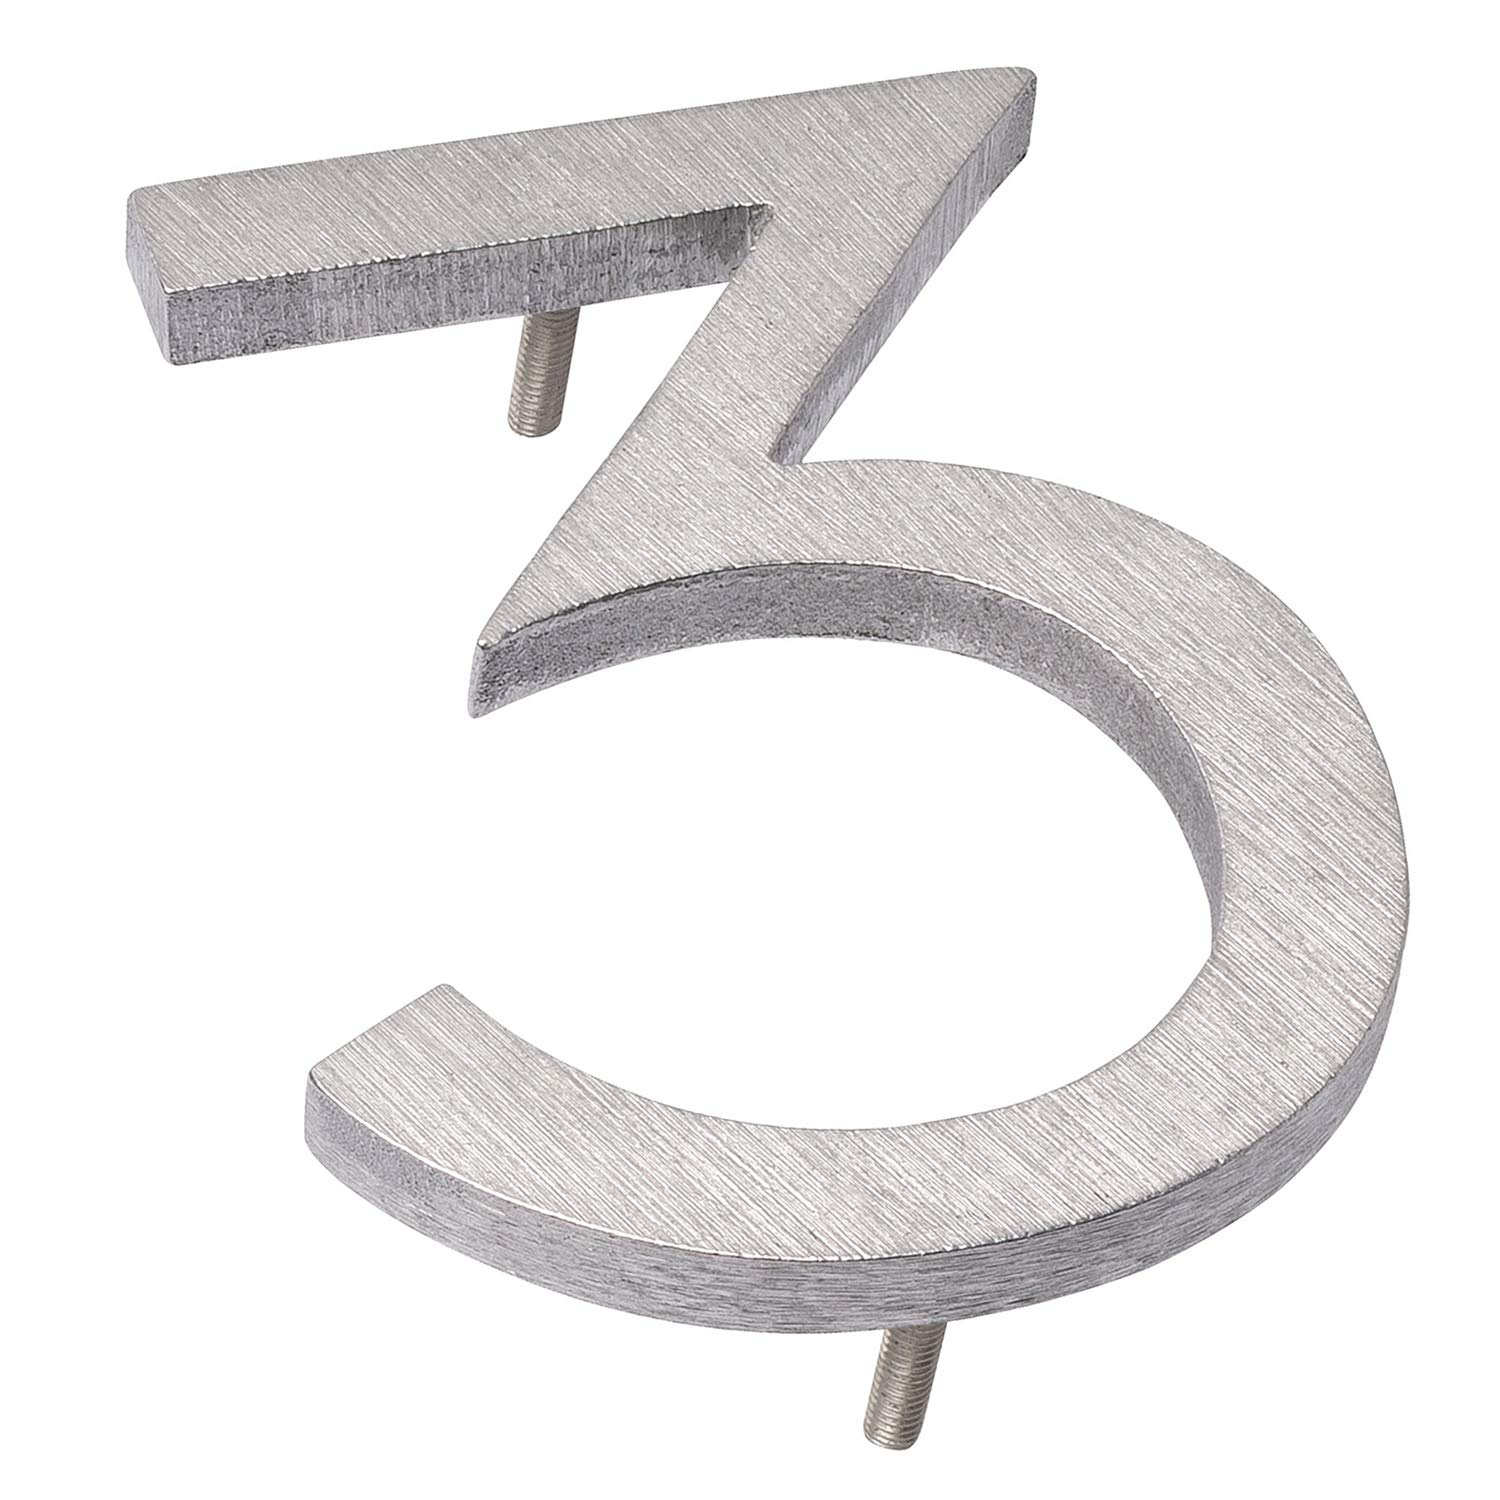 Montague Metal Products MHN-08-3-F-BA1 Floating House Number, 8'' x 6'' x 0.375'' Polished Aluminum